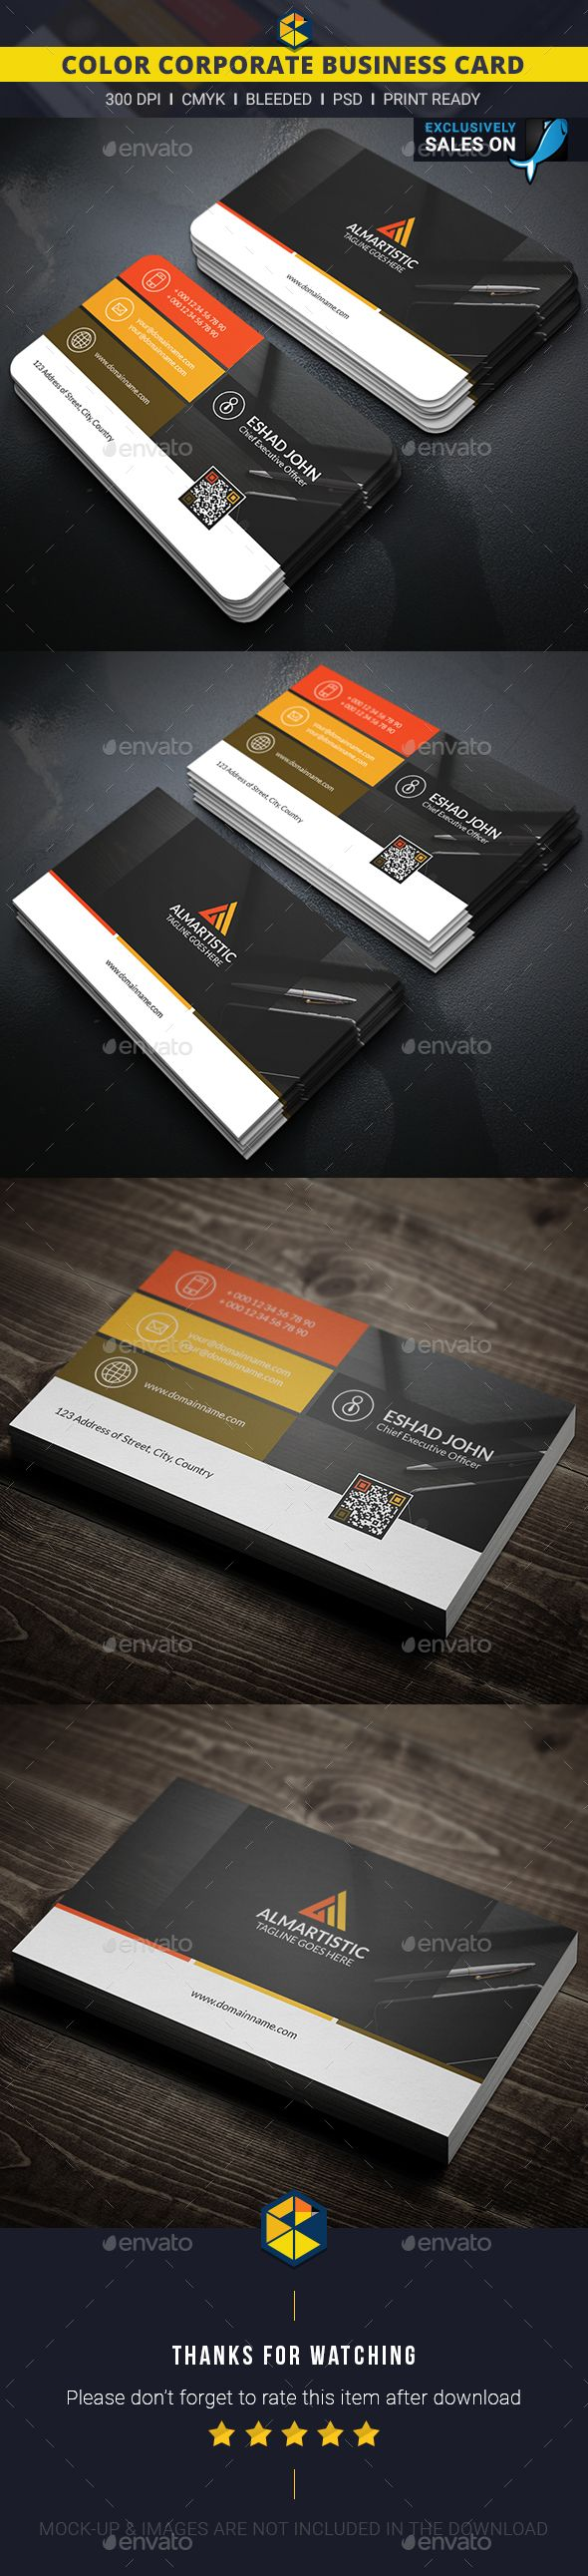 Business card template envato gallery card design and card template business cards templates envato choice image card design and business card template envato gallery card design reheart Gallery